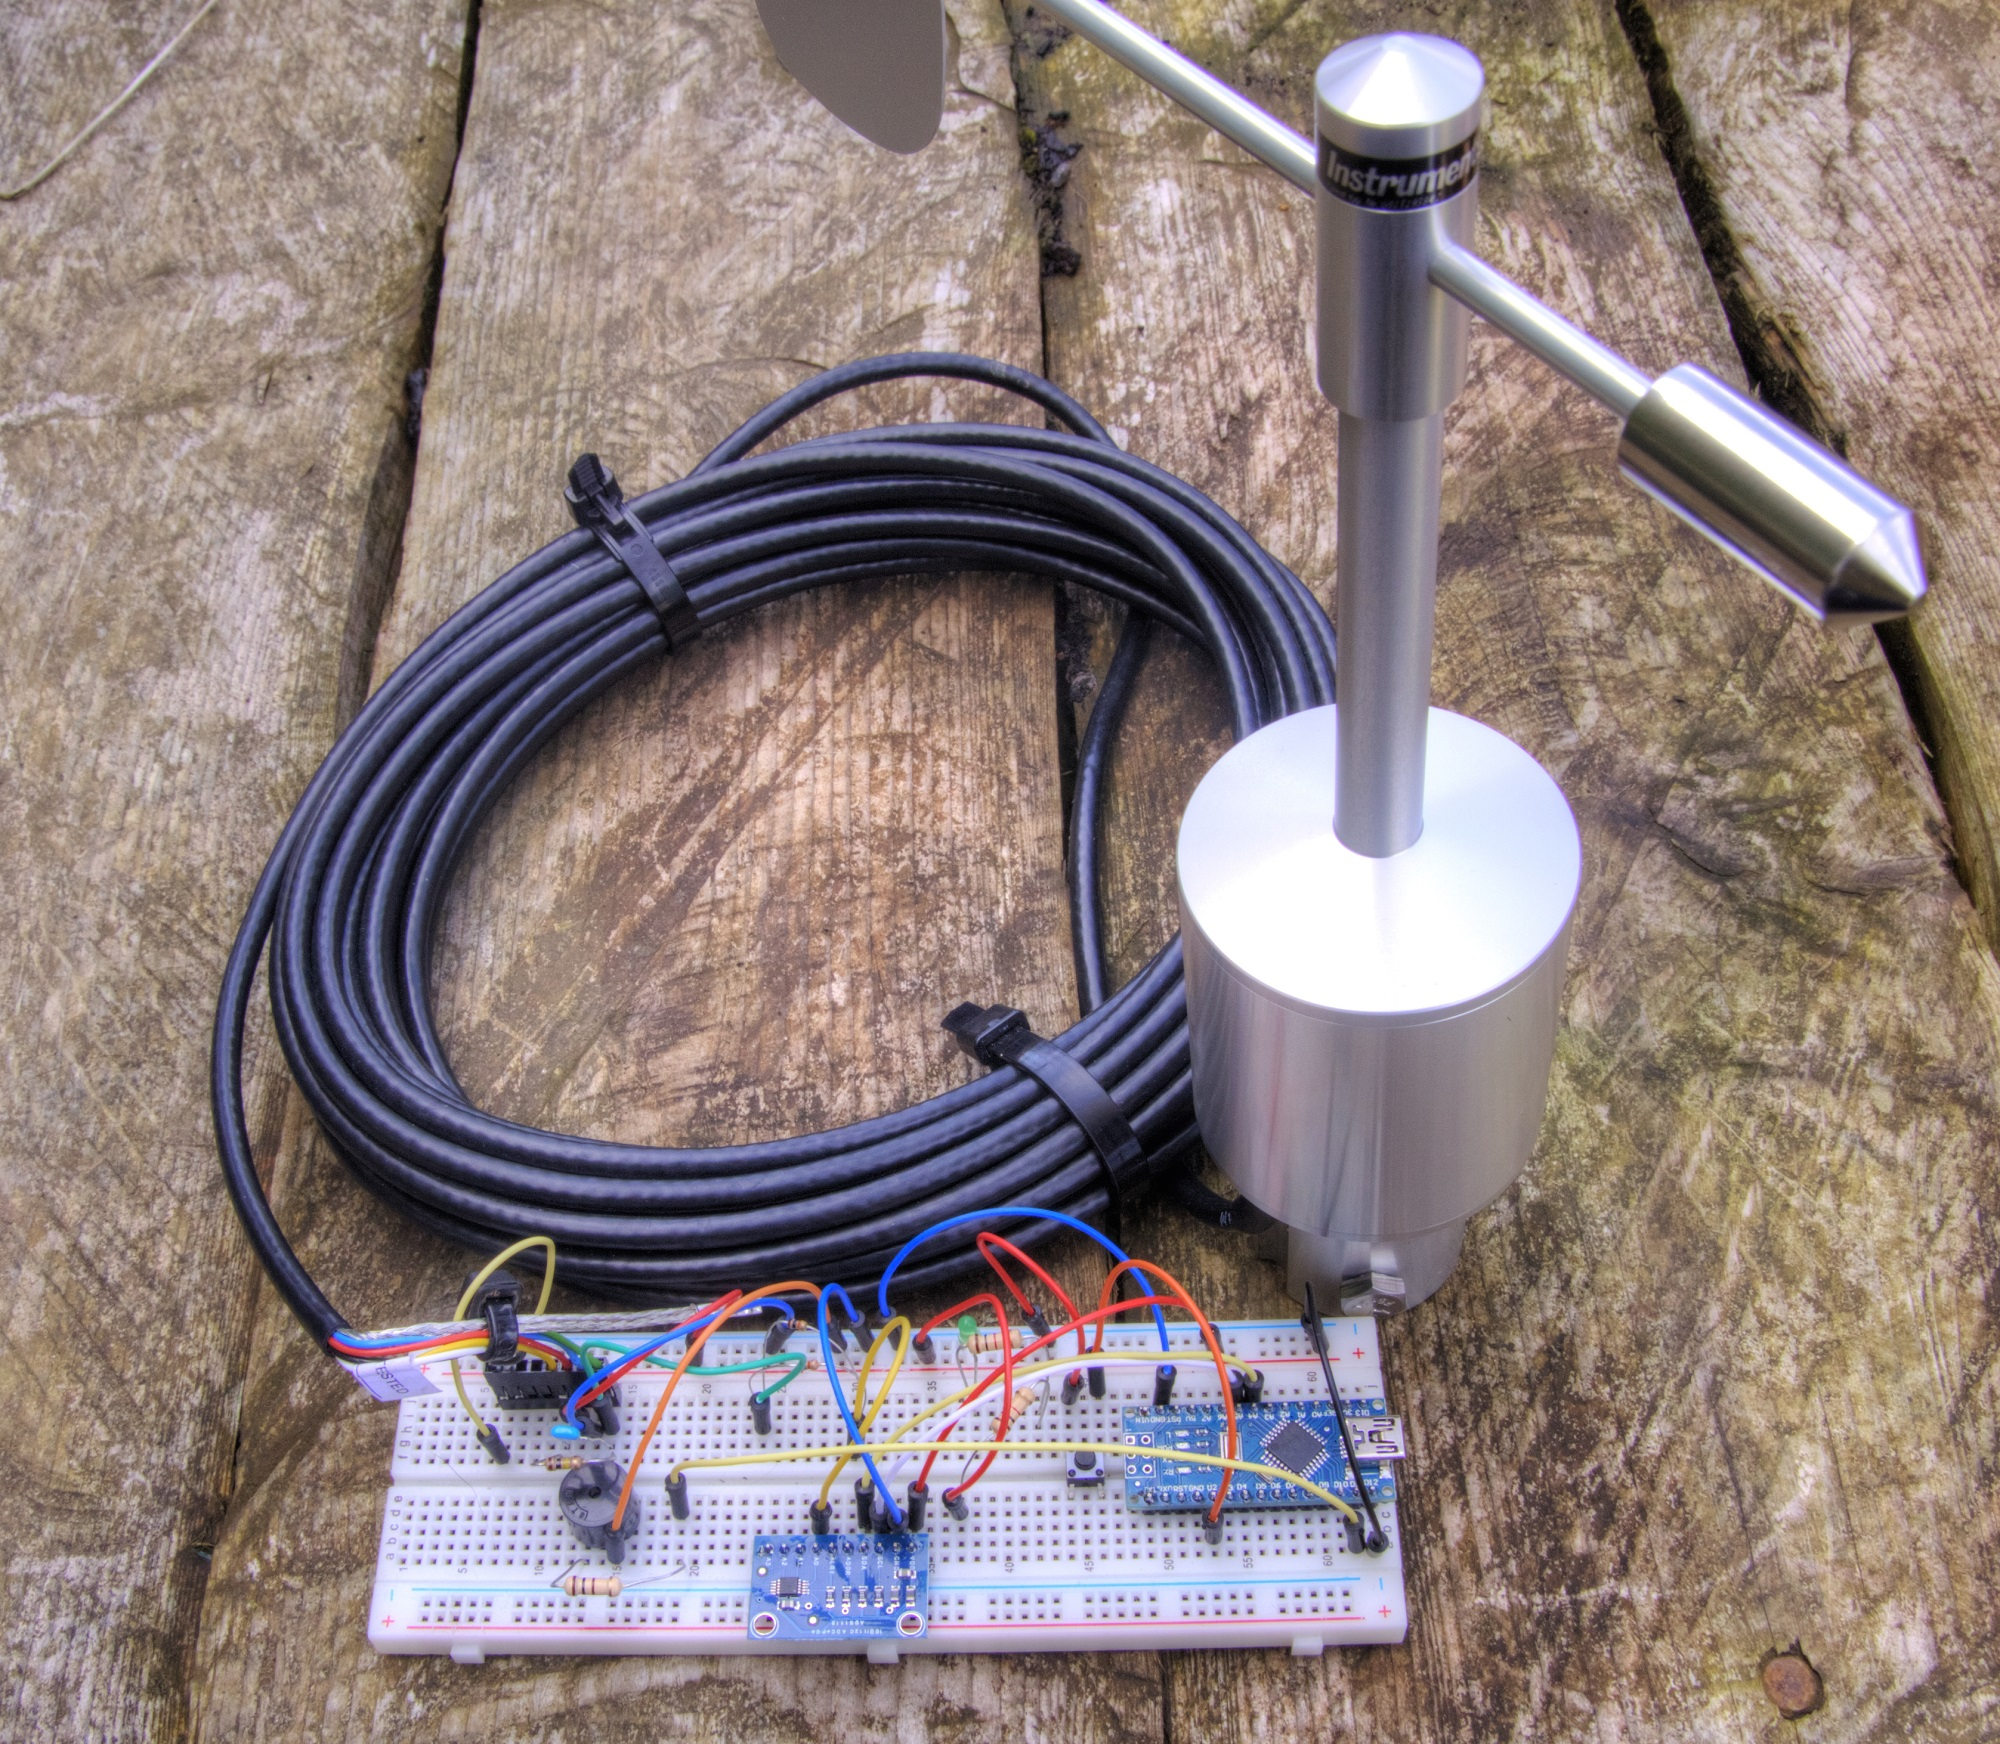 Project Arduino Gprs Iot Weather Station 61 Breadboarded High Pass Filter As The Amazing Online Continues We Have Yet Another Upgrade To Vast Array Of Sensors With A Professional Analogue Wind